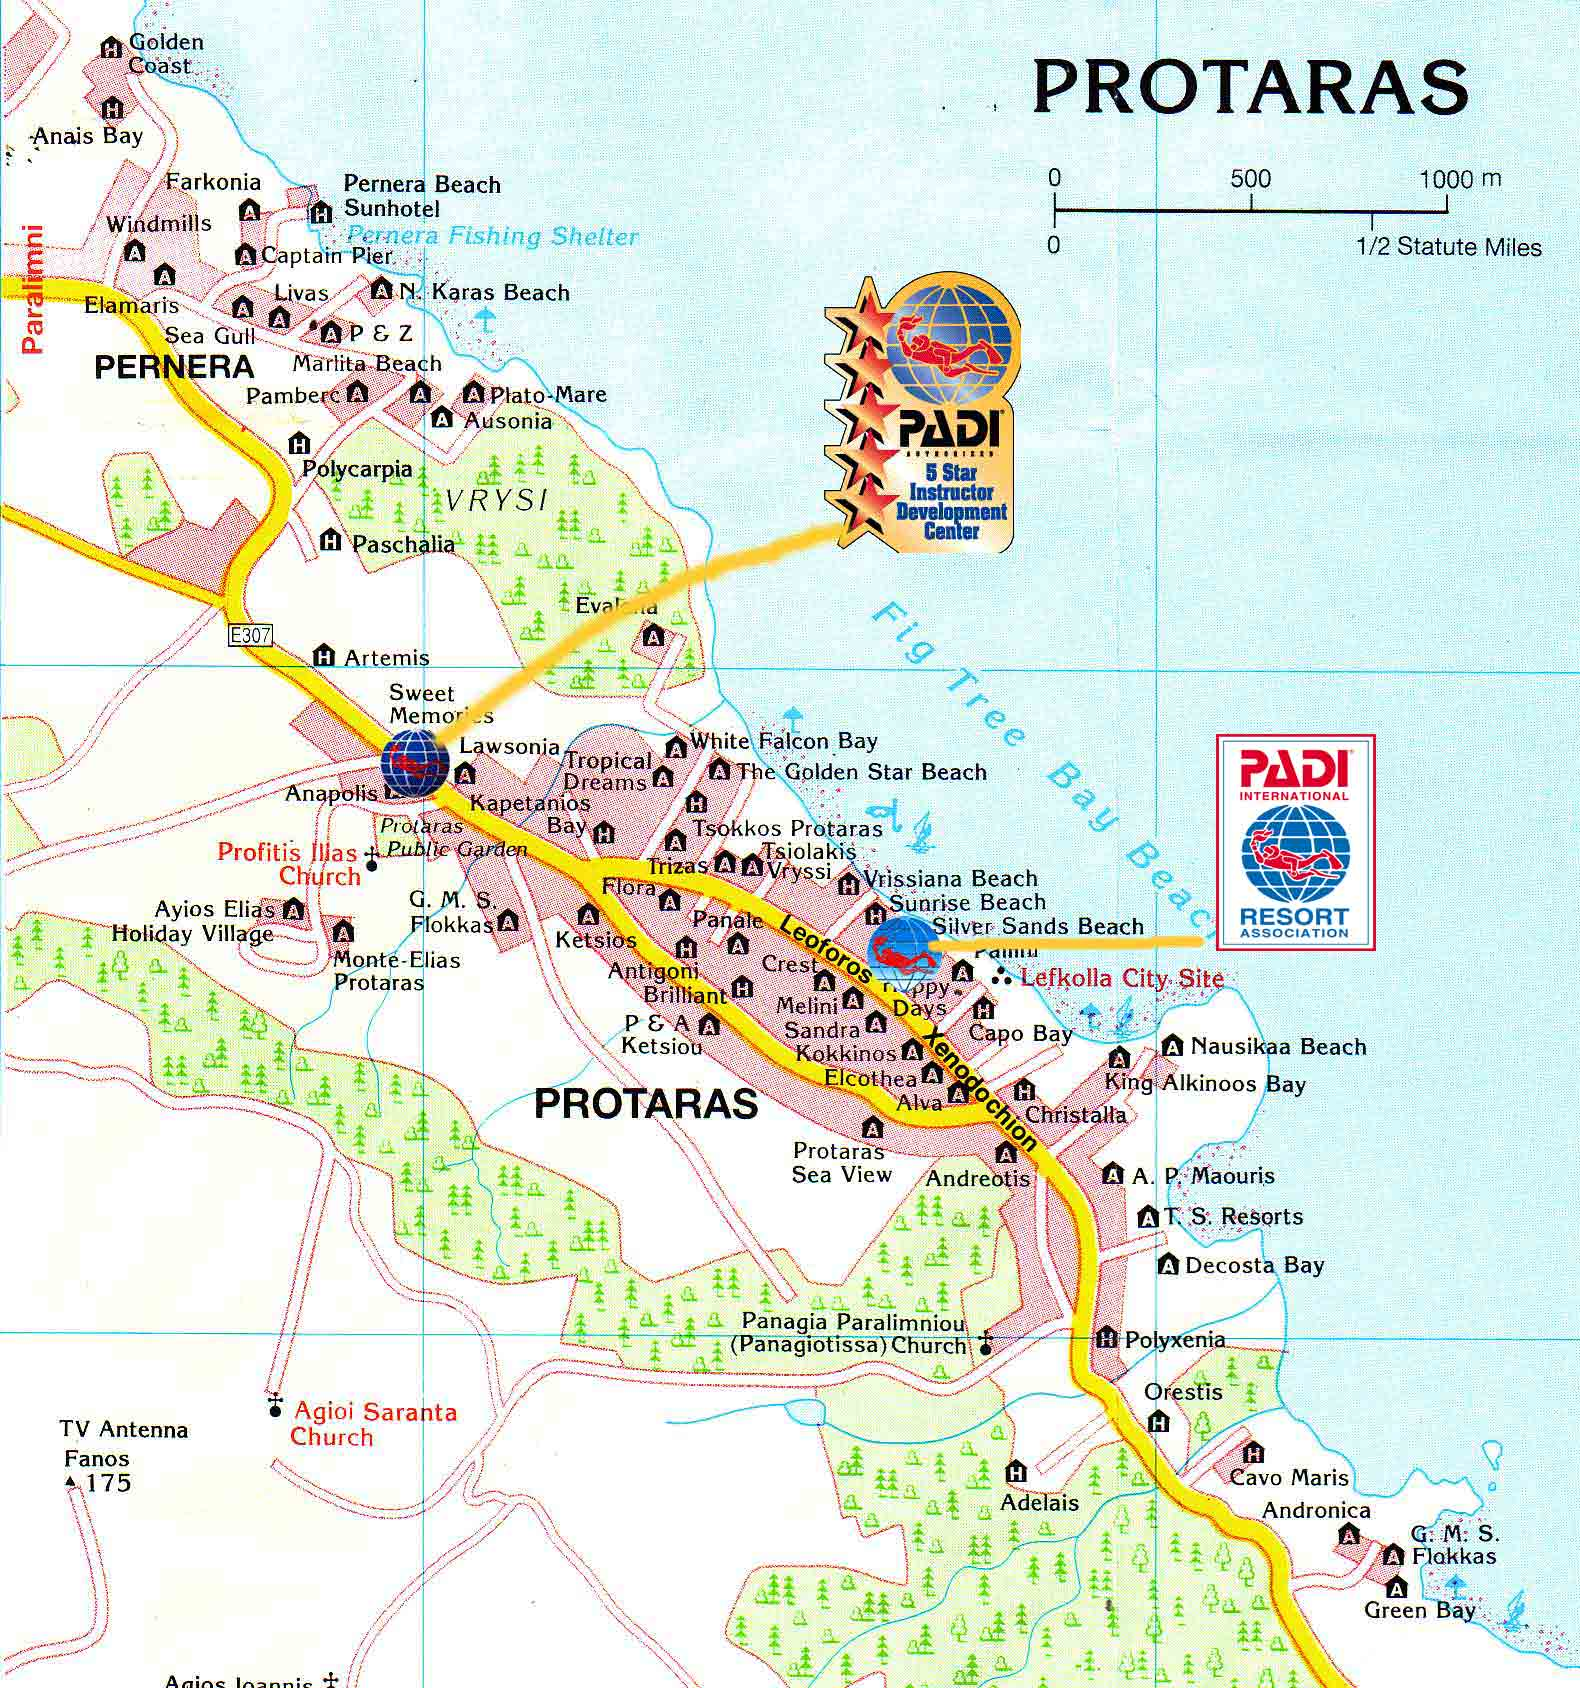 Large Protaras Maps for Free Download and Print HighResolution